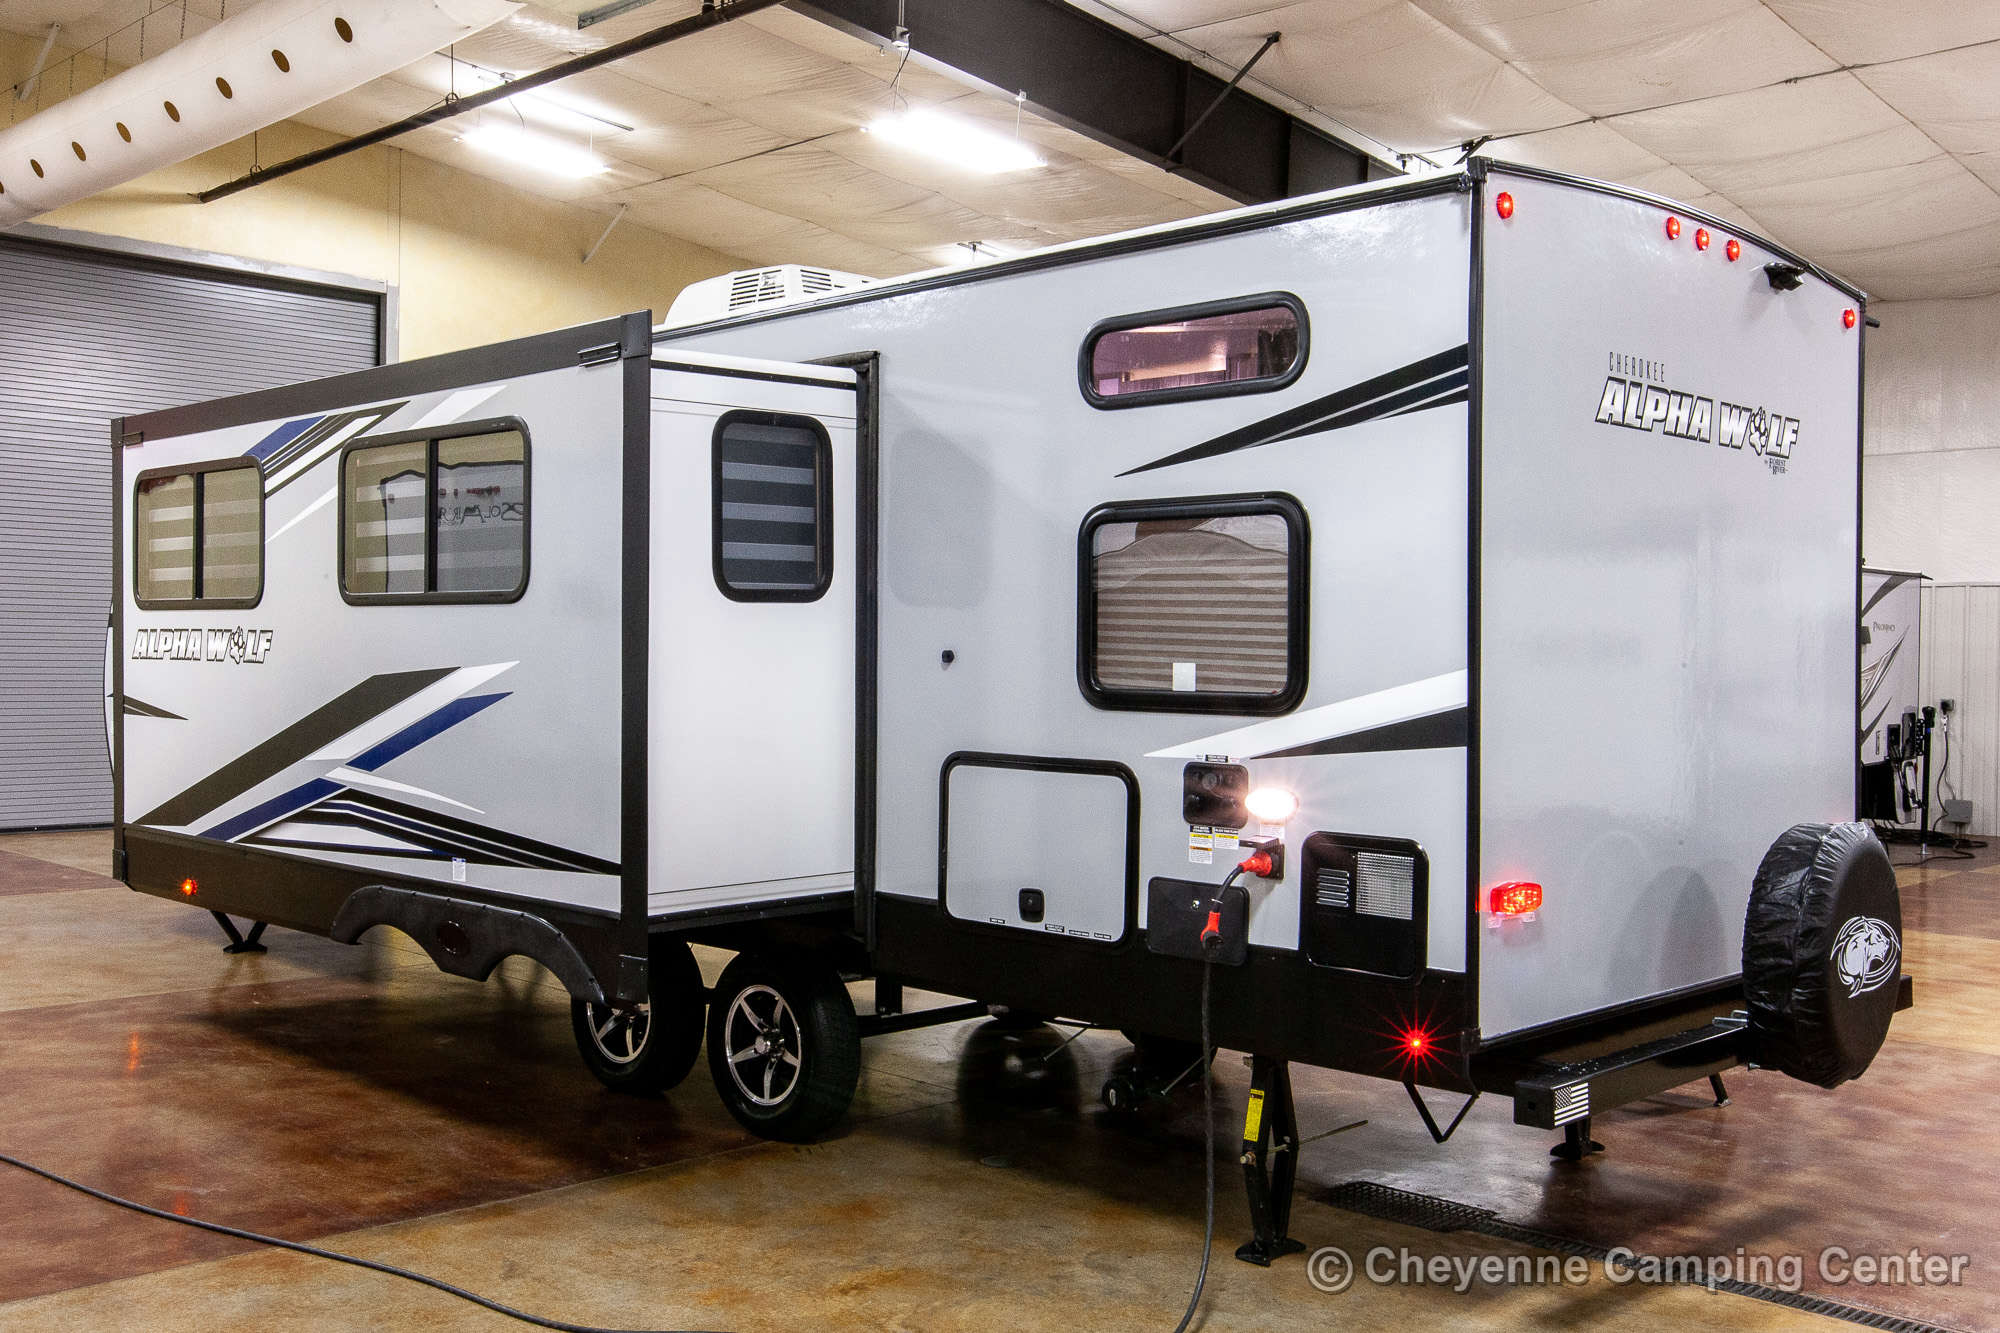 2021 Forest River Cherokee Alpha Wolf 26DBH-L Bunkhouse Travel Trailer Exterior Image